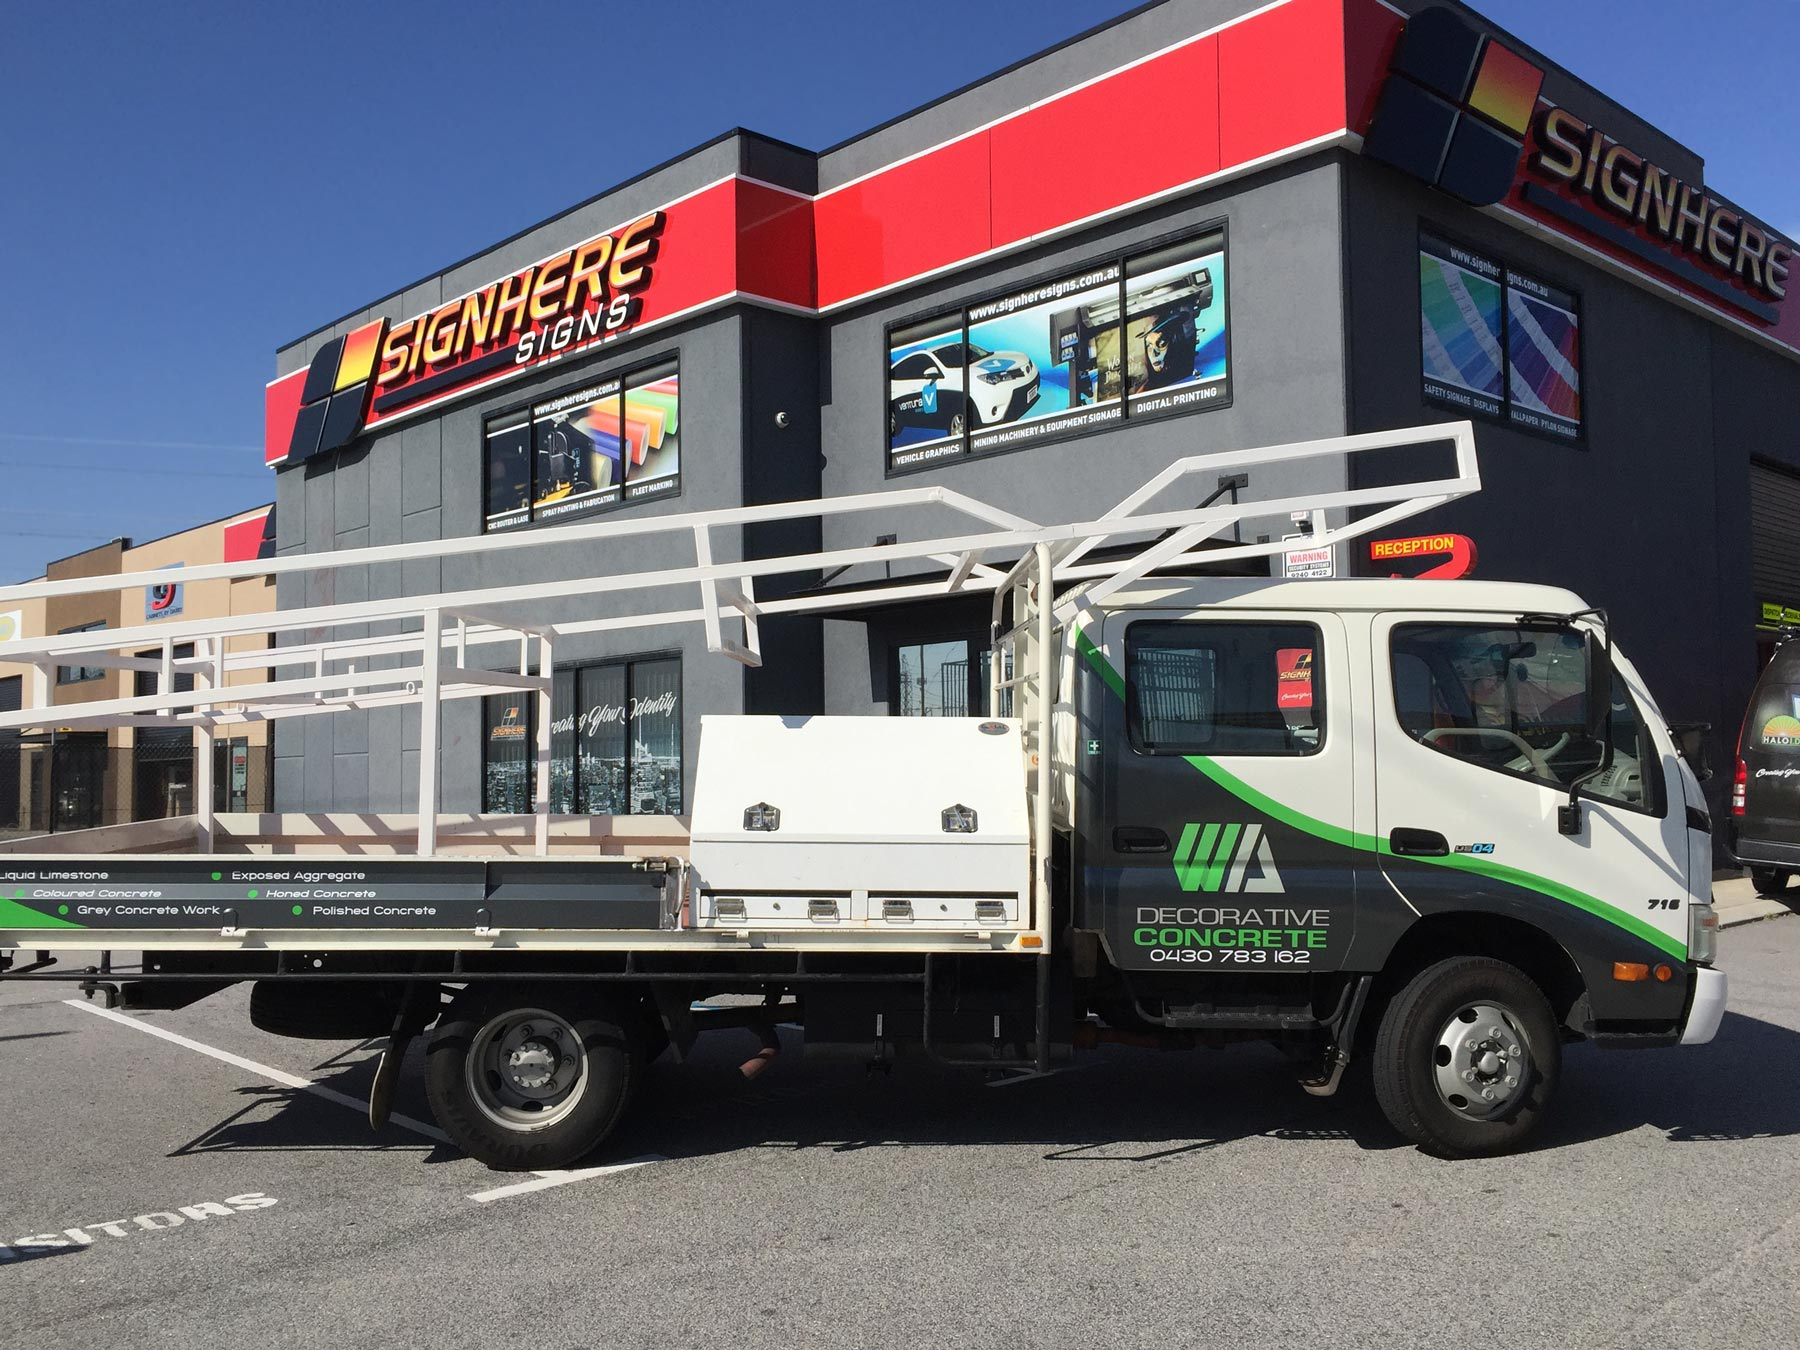 Sign Here Signs provide vehicle branding for Tradies like WA Decorative Concrete